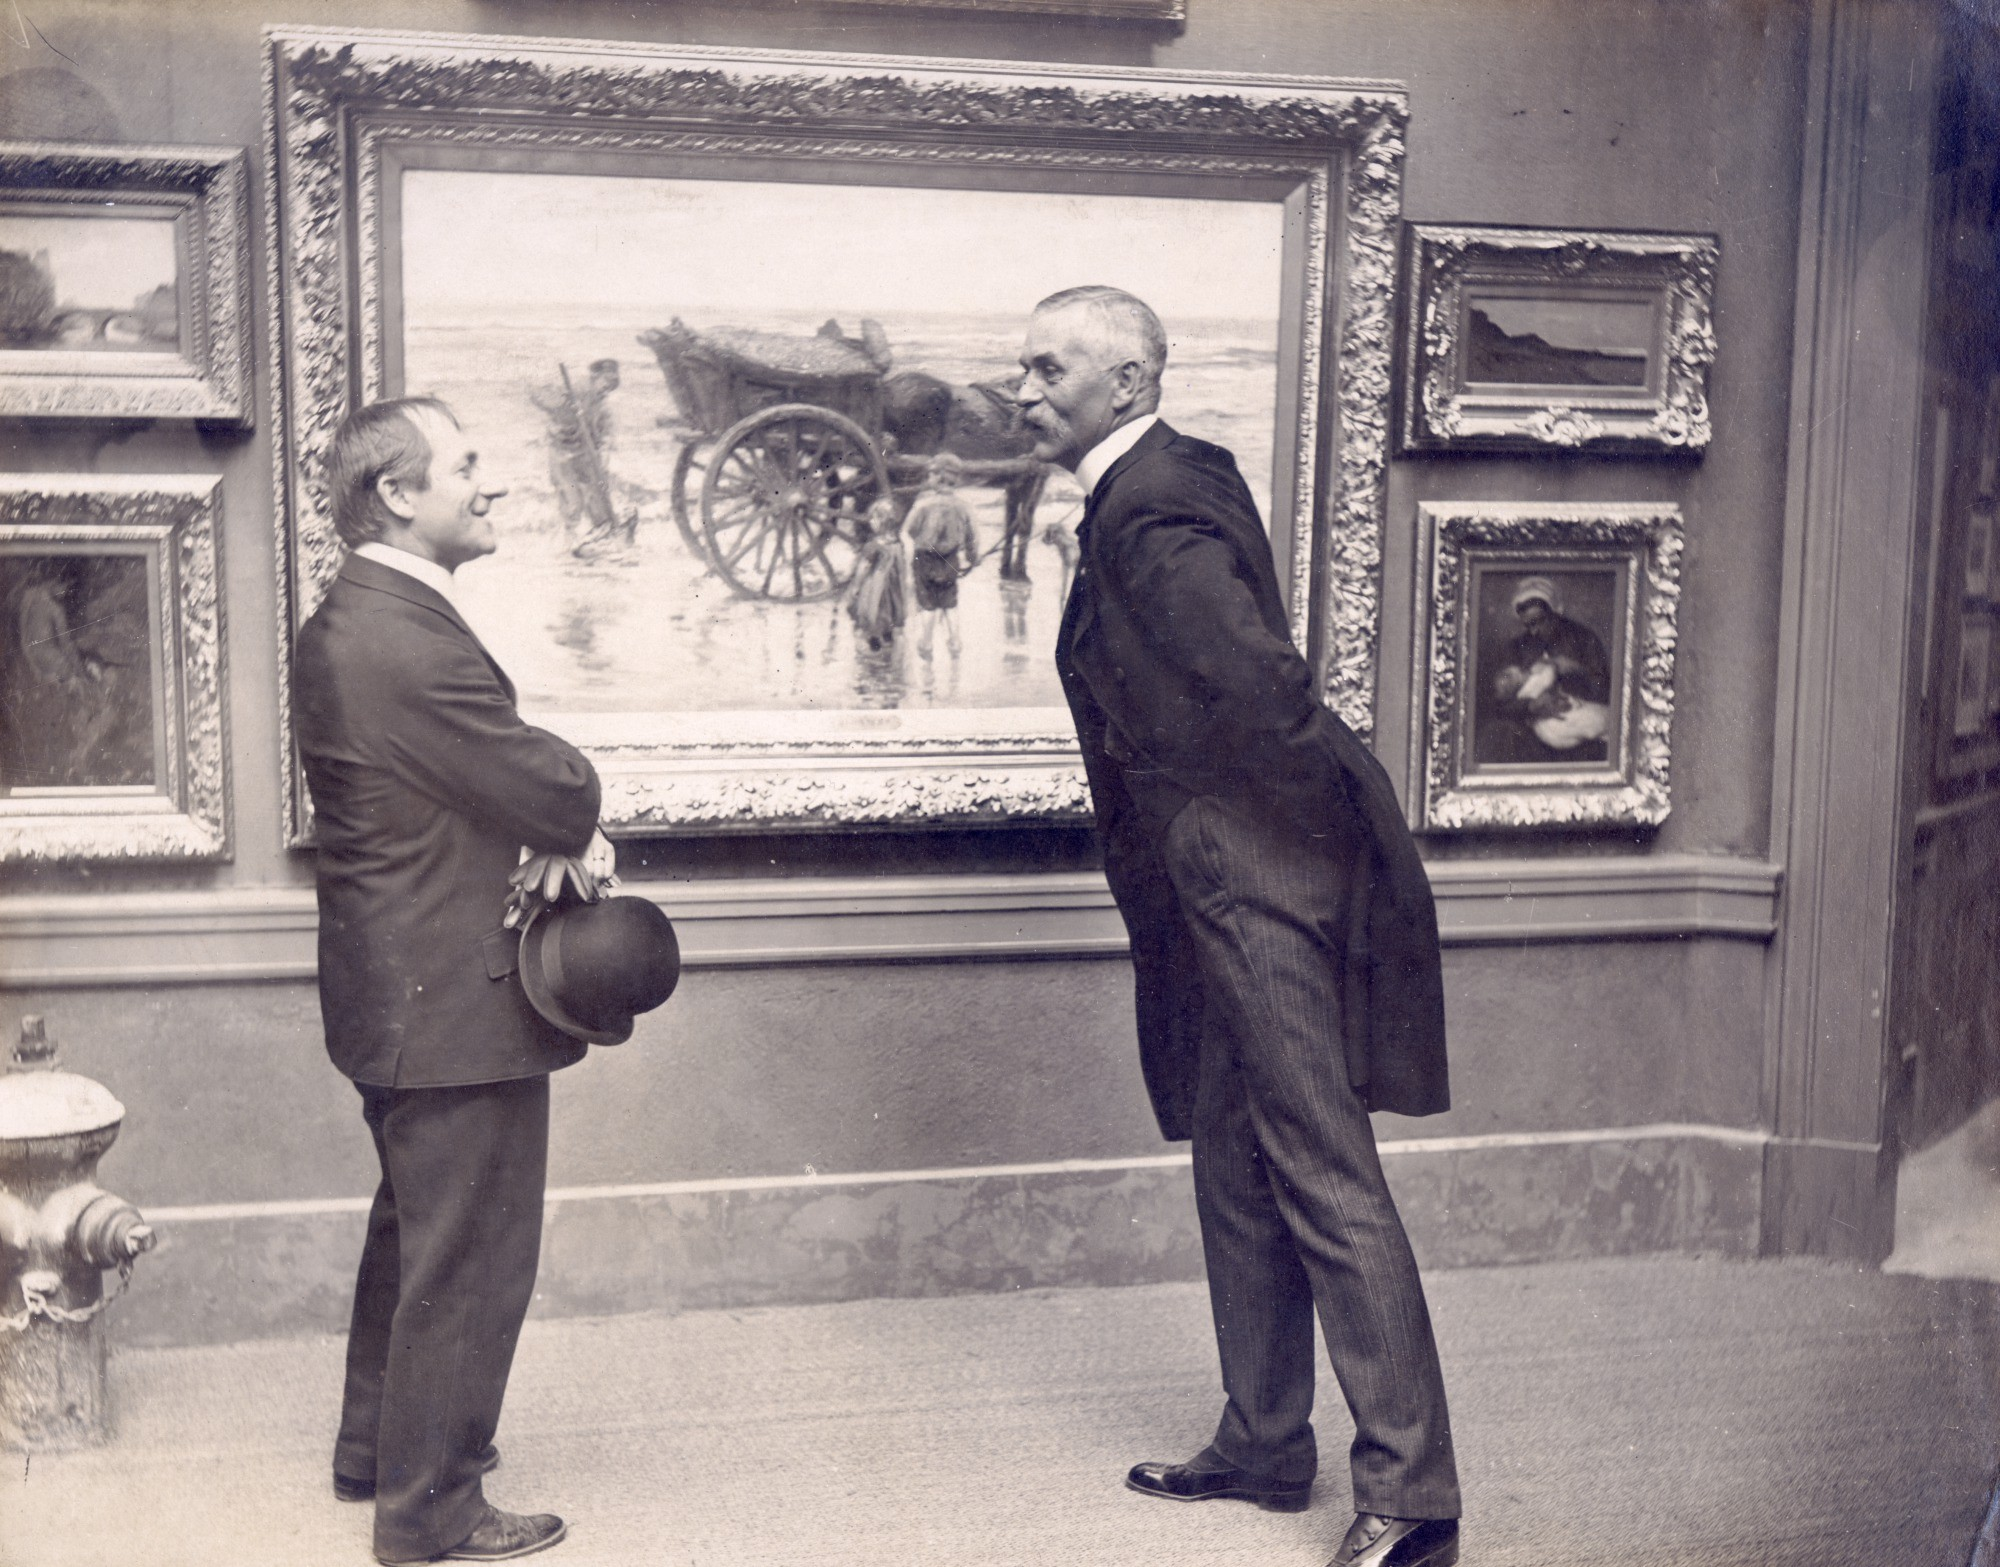 Two visitors viewing painting at the 1904 World's Fair.